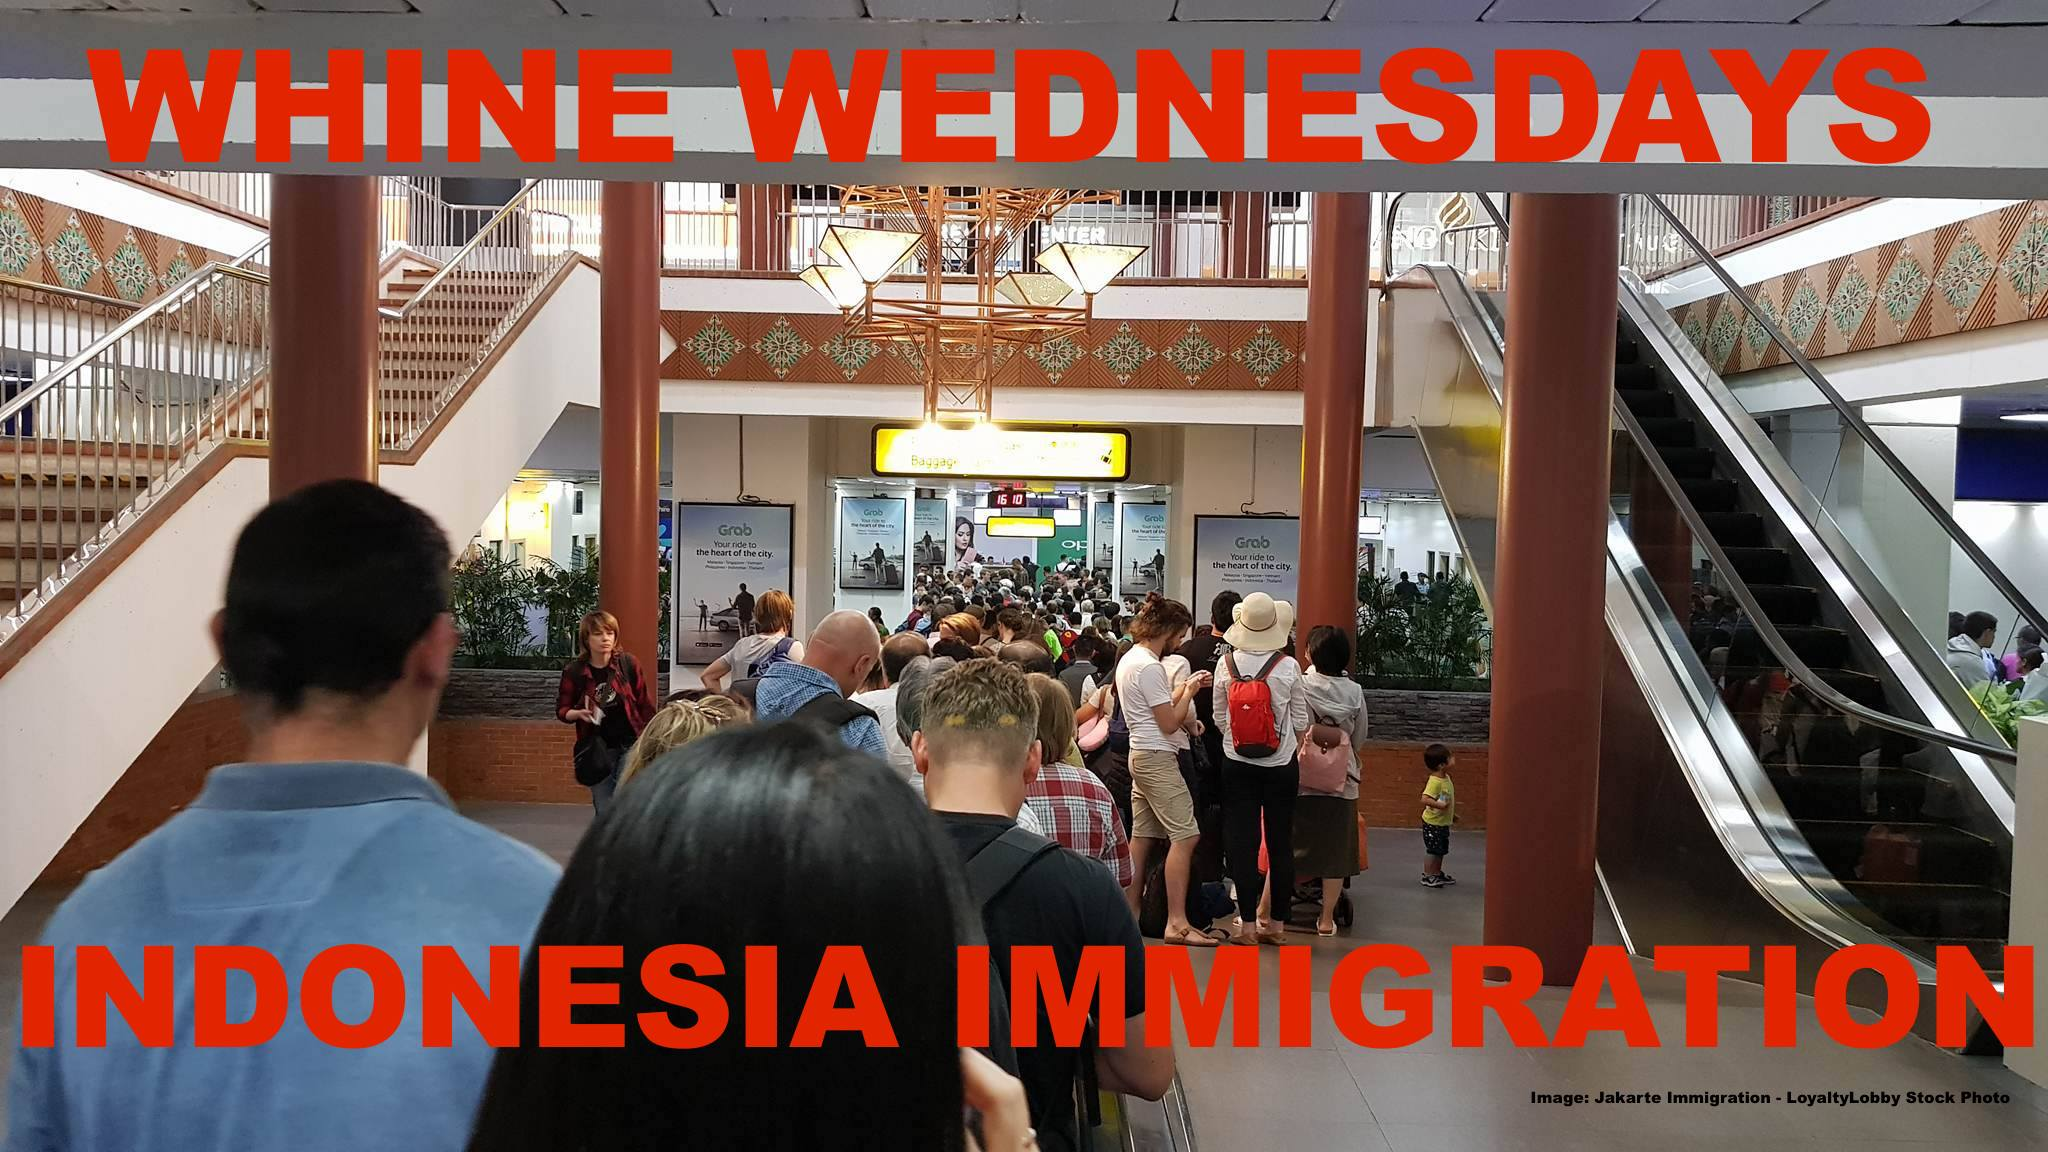 Whine Wednesday Immigration Lines Out Of Control In